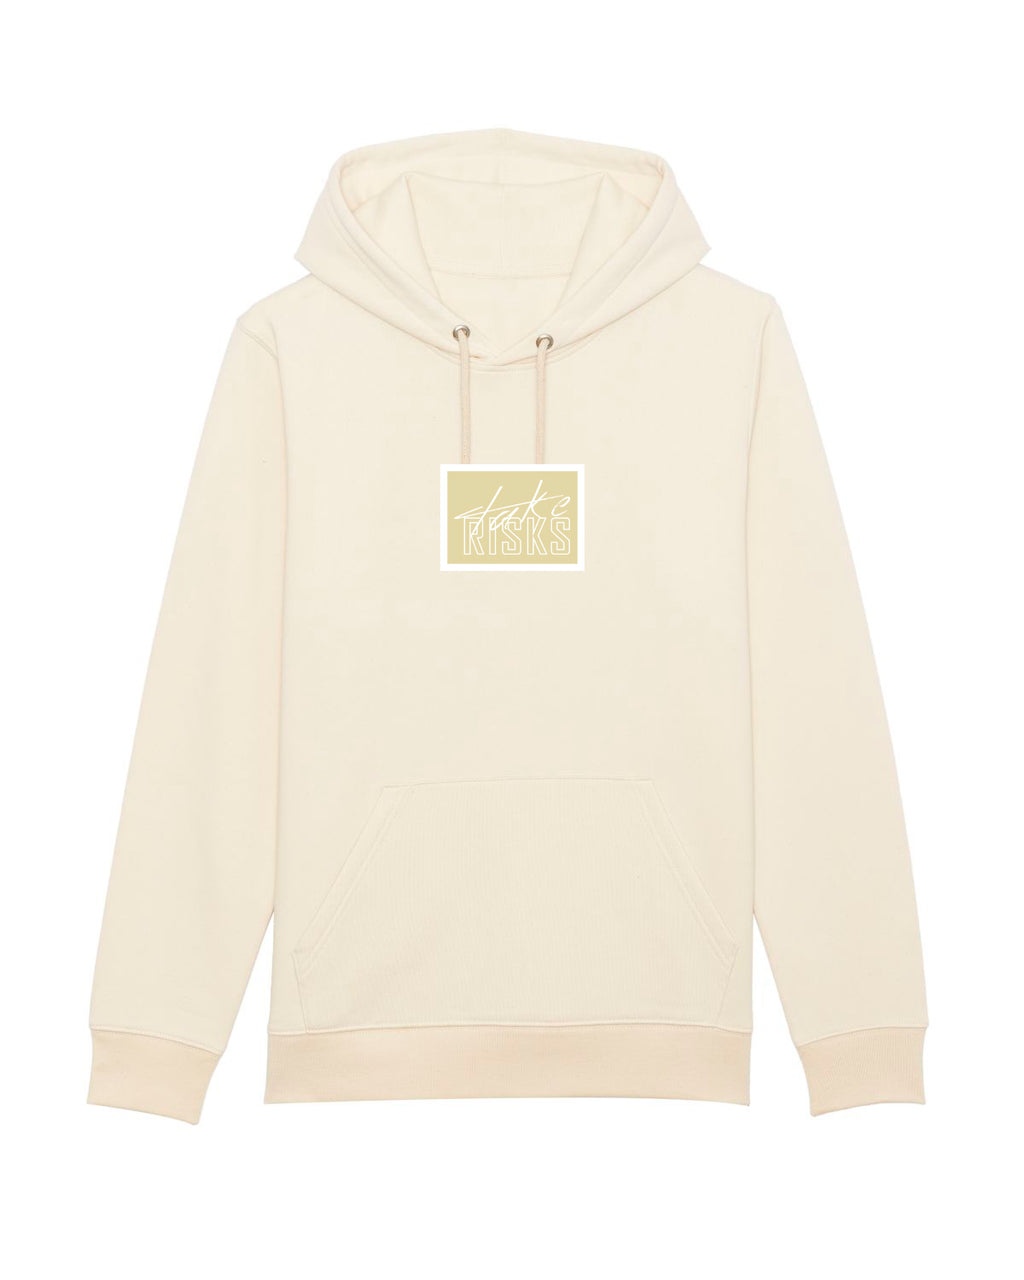 Take Risks Cream Patch Hoodie